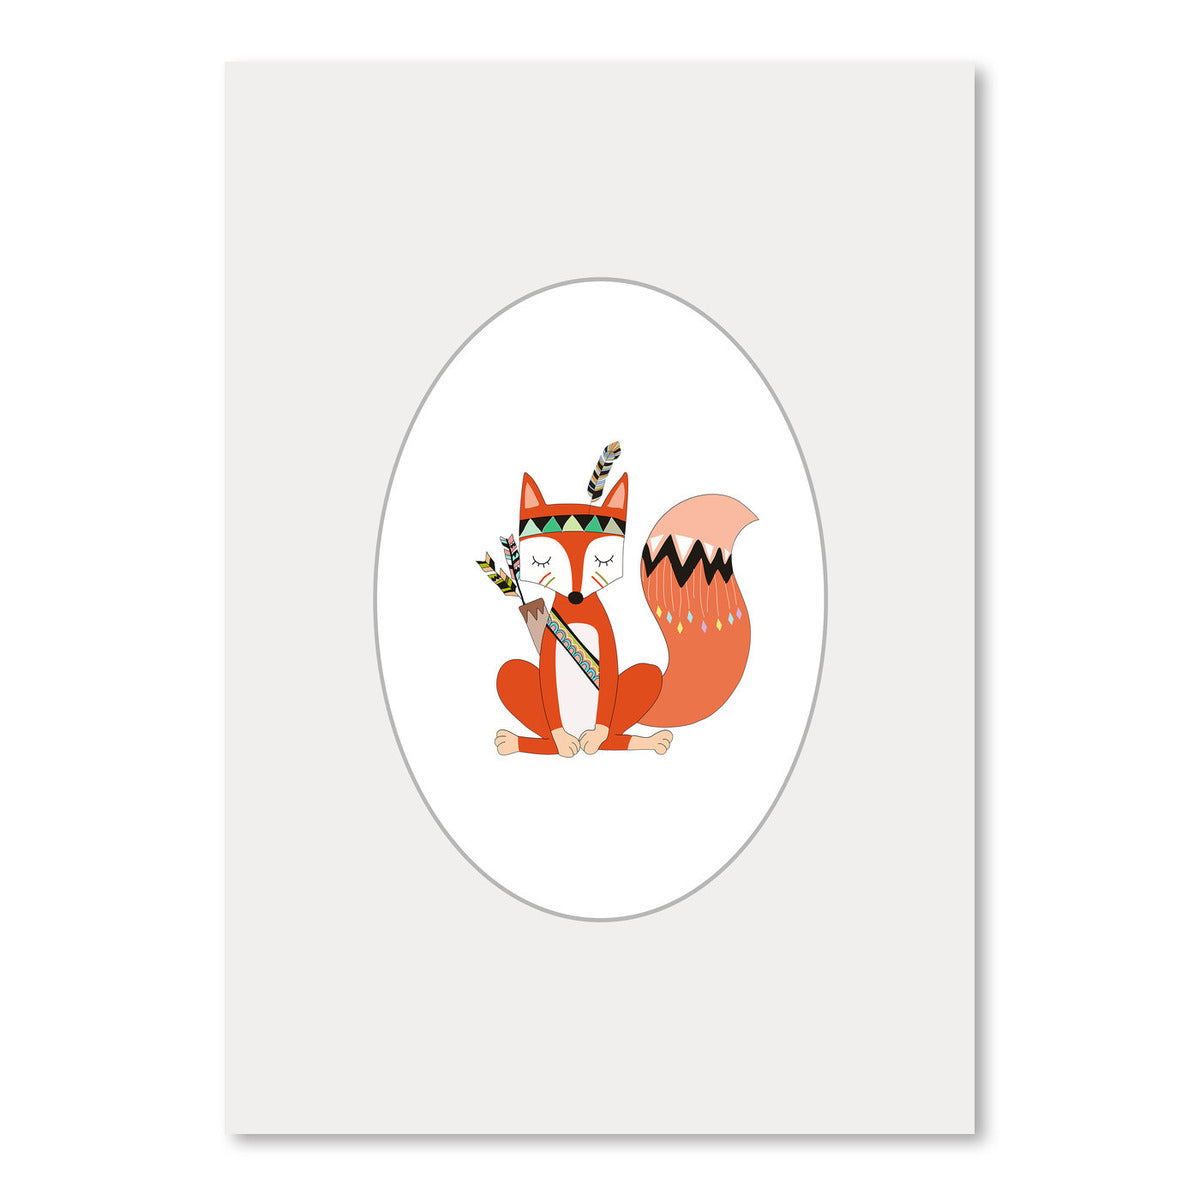 Tribal Fox In Oval by Wall + Wonder - Art Print - Americanflat